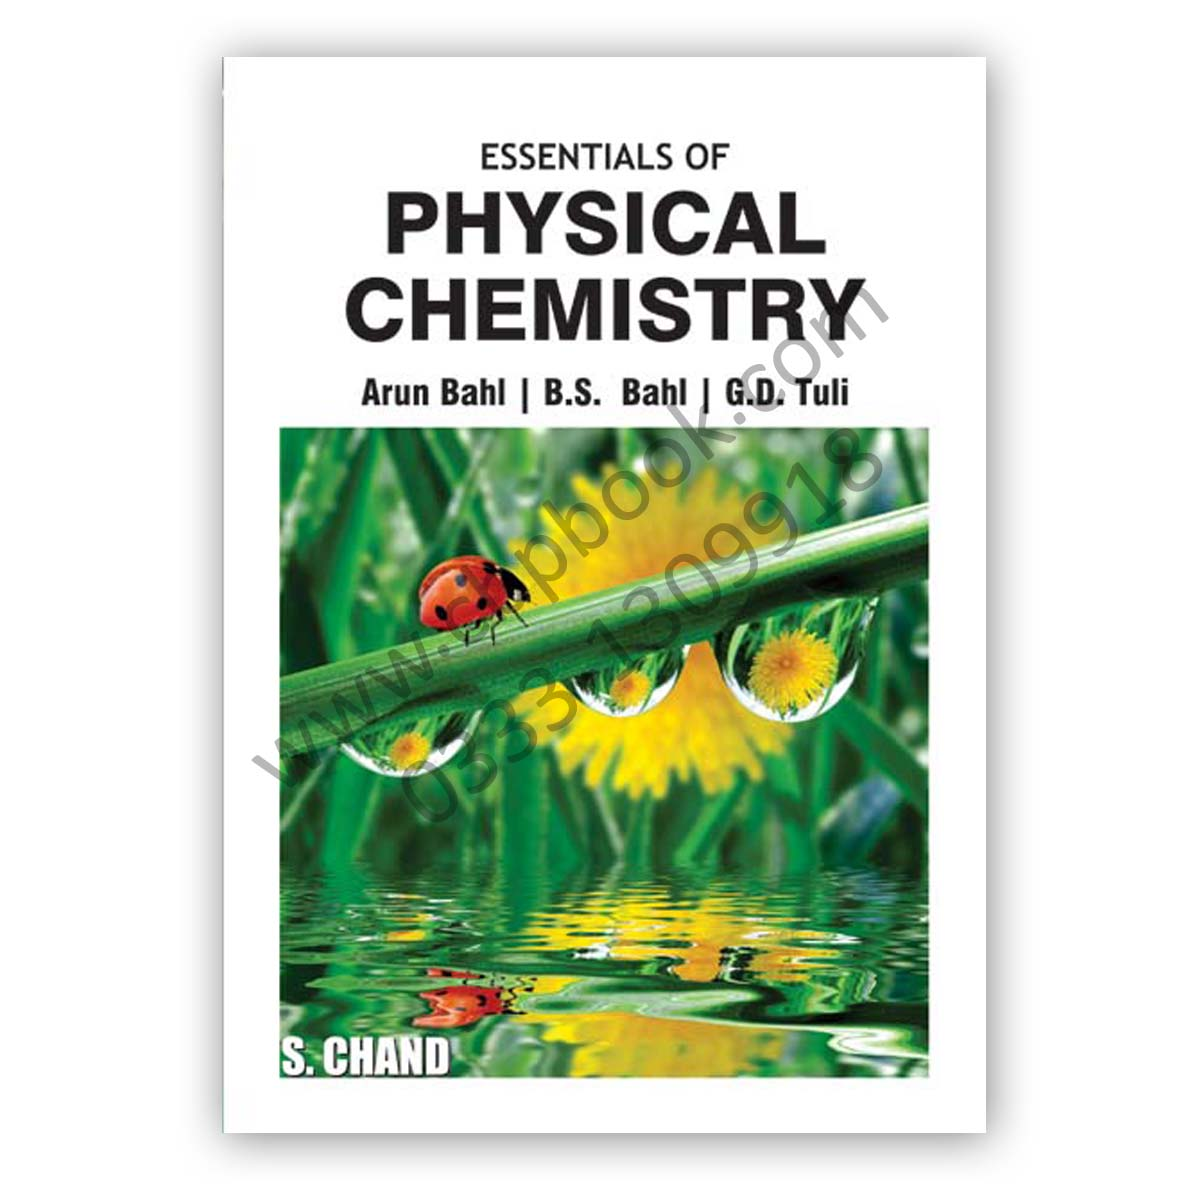 Free Download Essentials of Physical Chemistry by Arun Bahl and B.S. Bahl